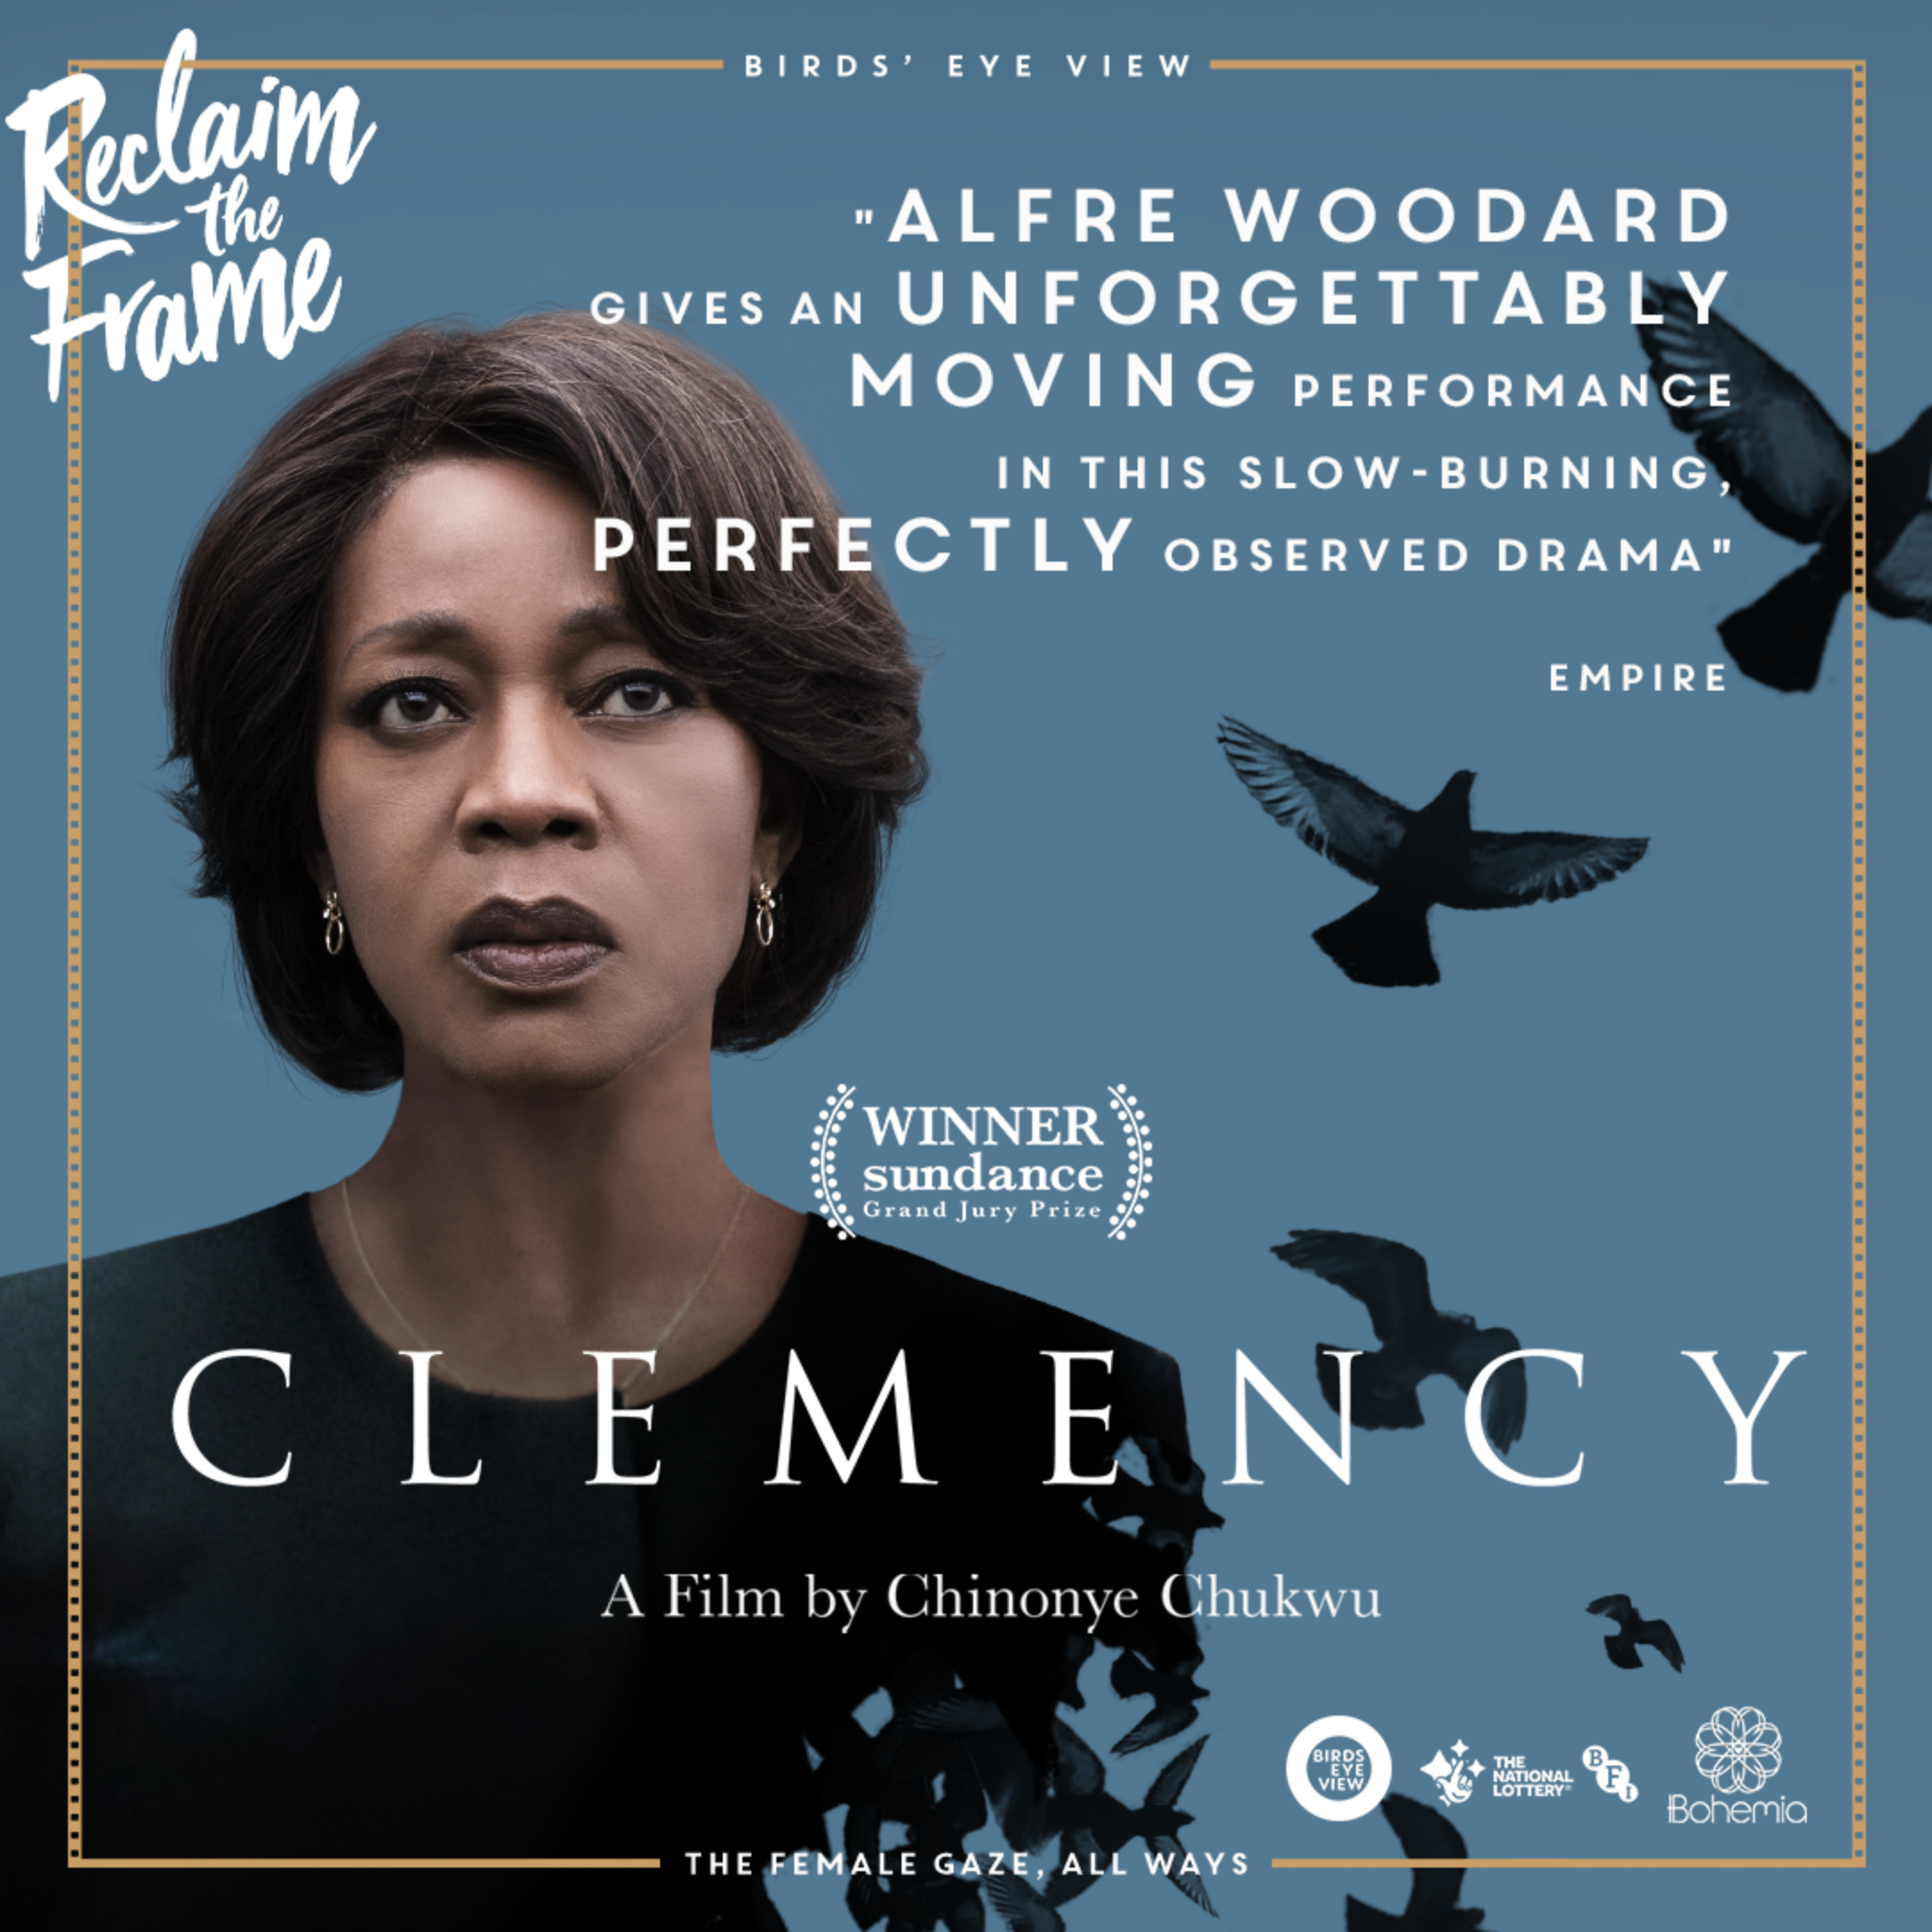 Clemency at Reclaim the Frame